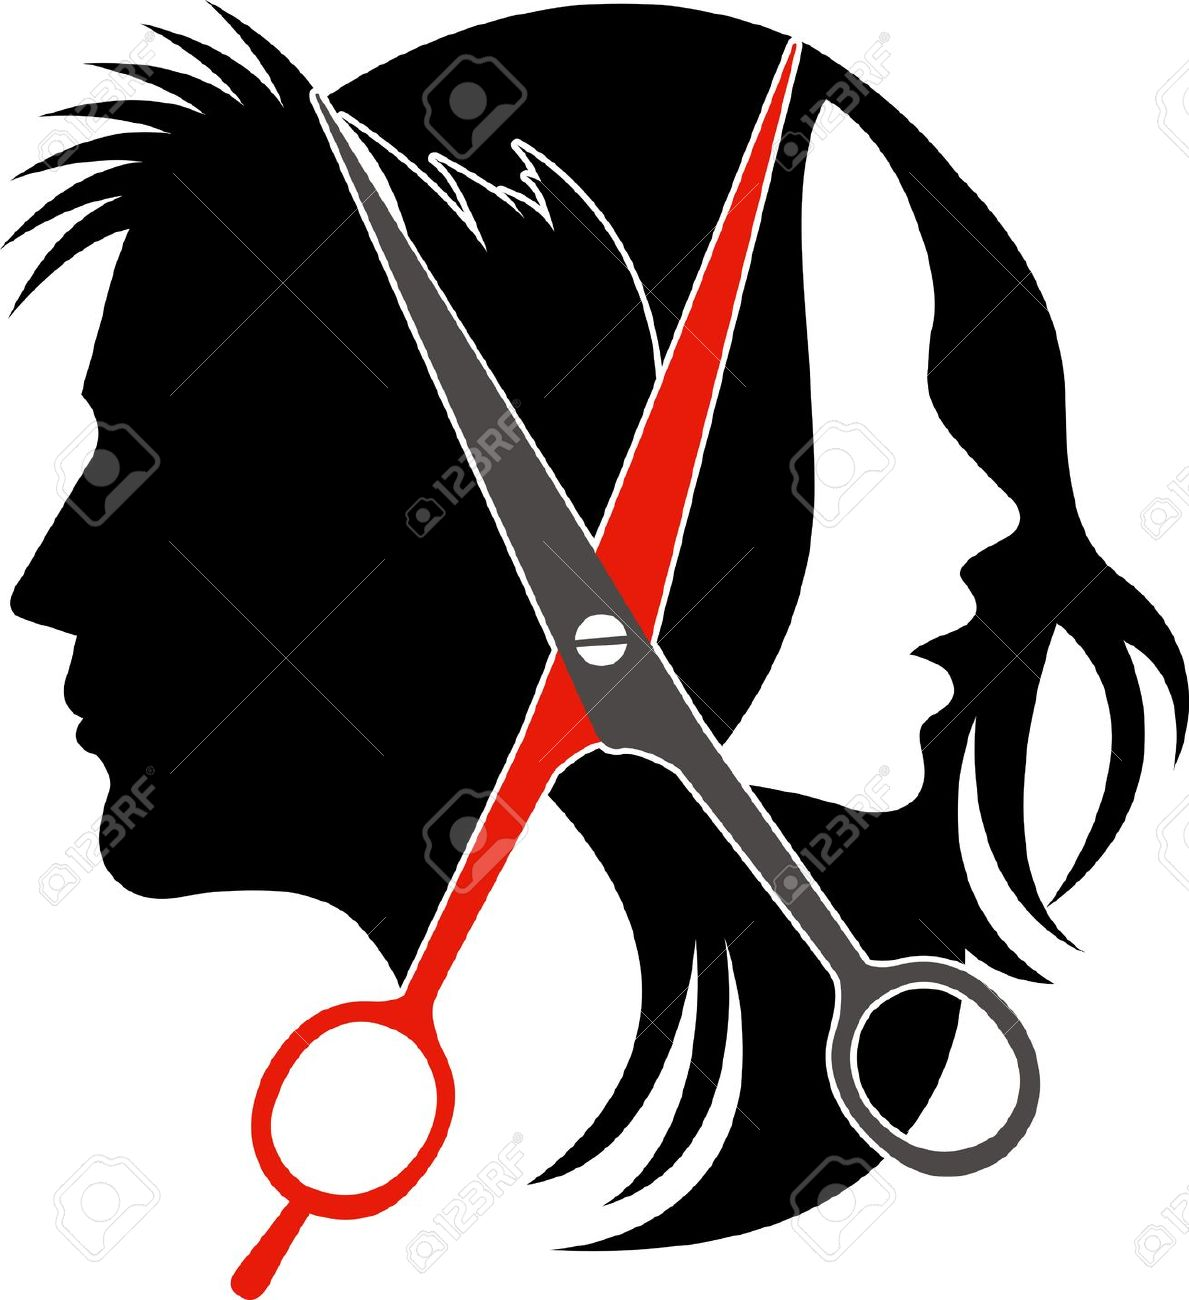 salon equipment clipart